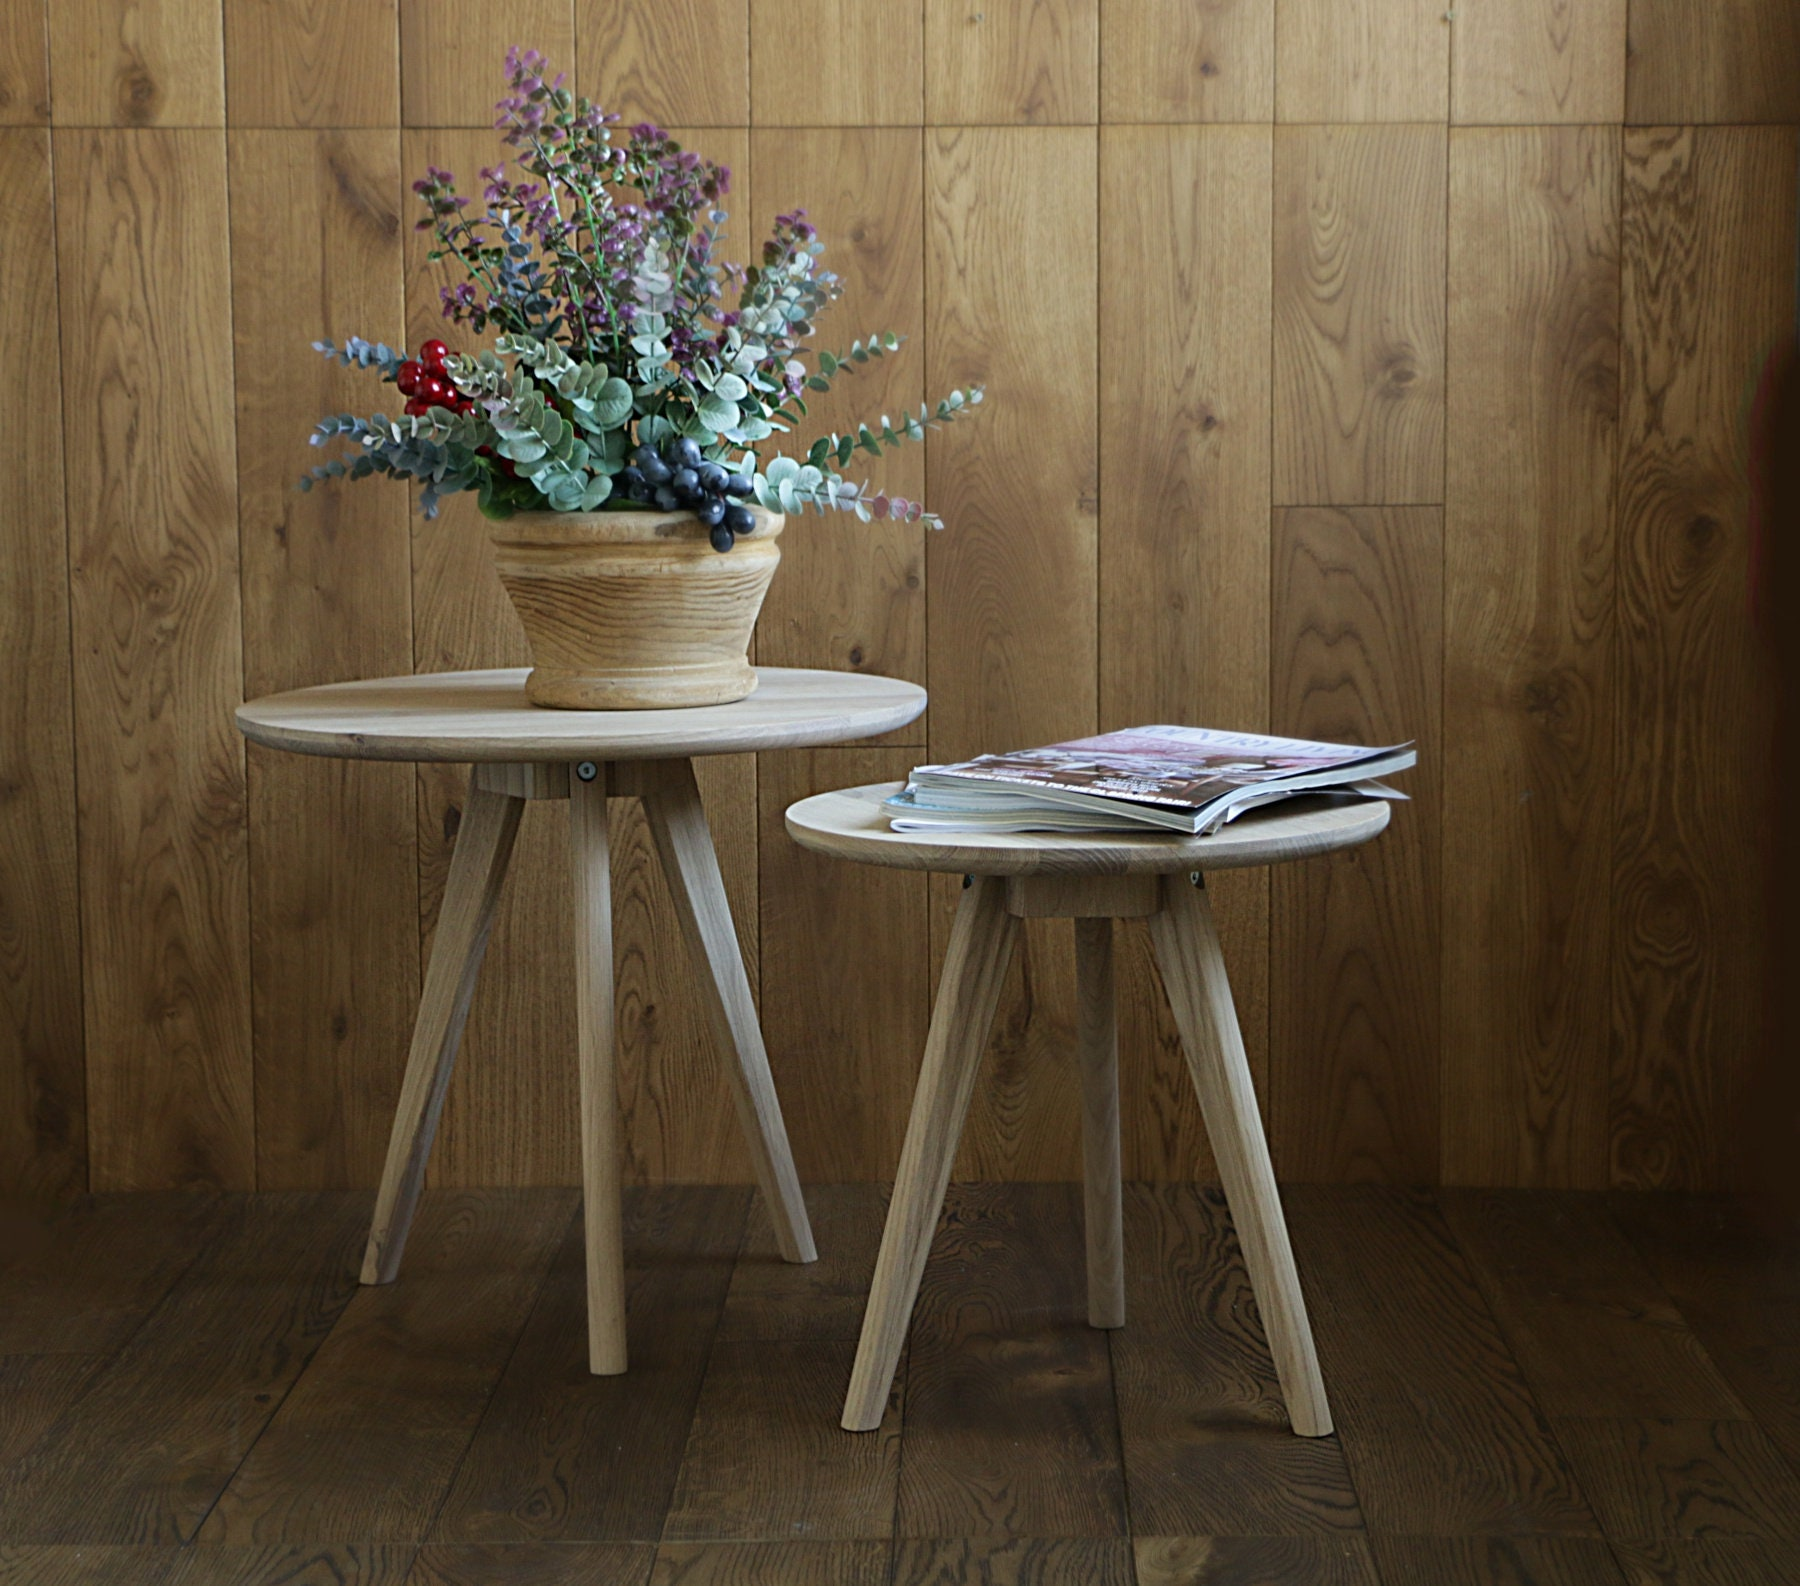 Mid Century Rose Wood Side Table Or Small Coffee Table For: Set Of 2 Oak Wood Side Tables Small Table Coffee Table